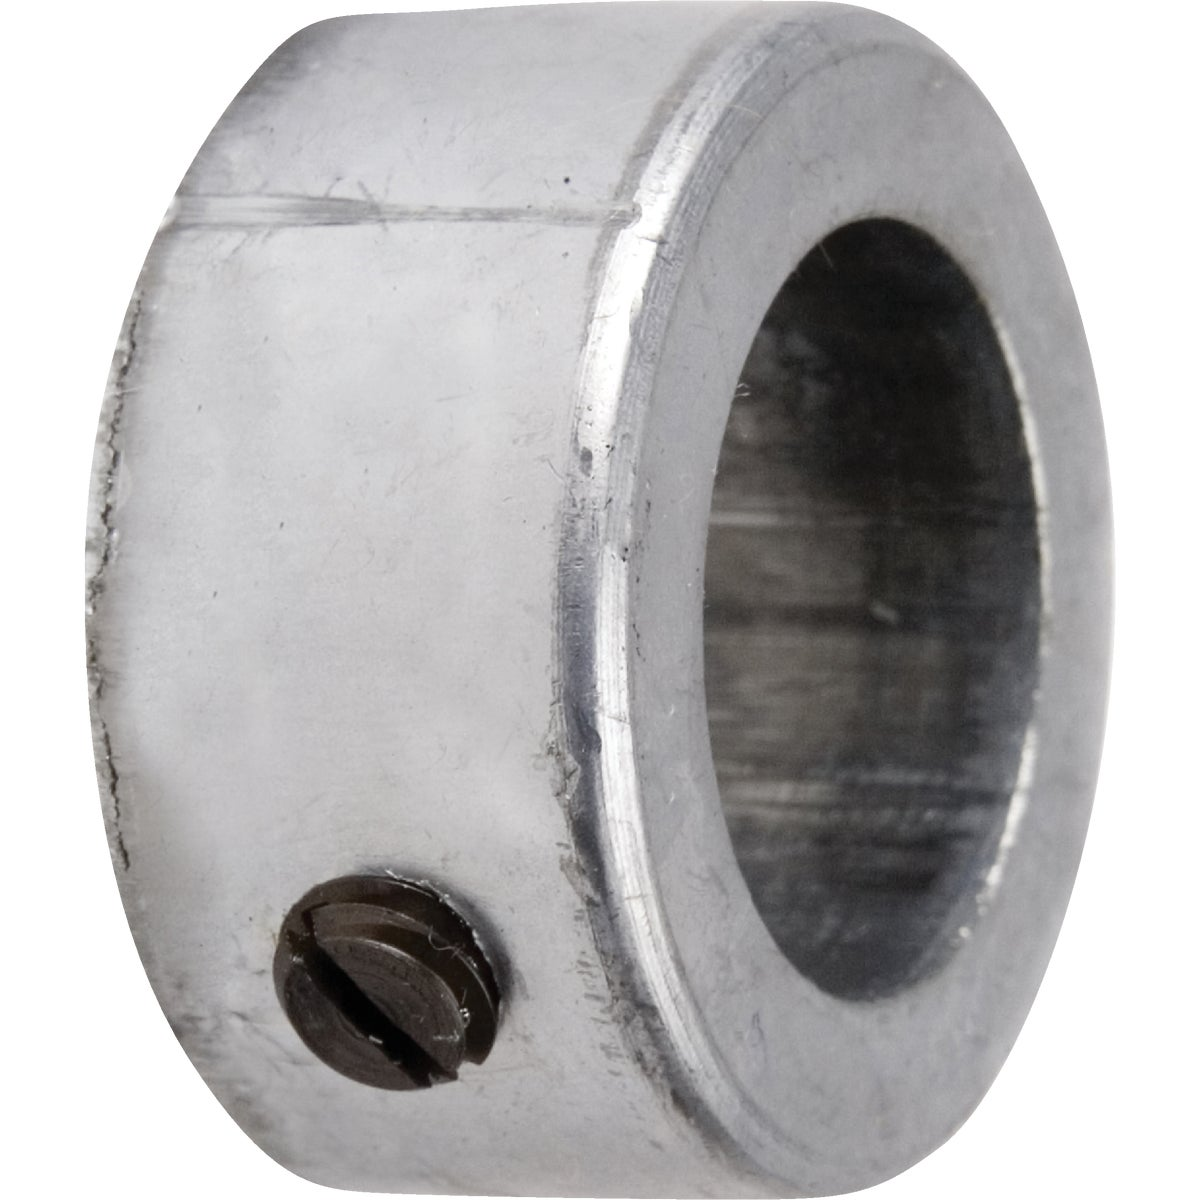 "3/4"" SHAFT COLLAR"